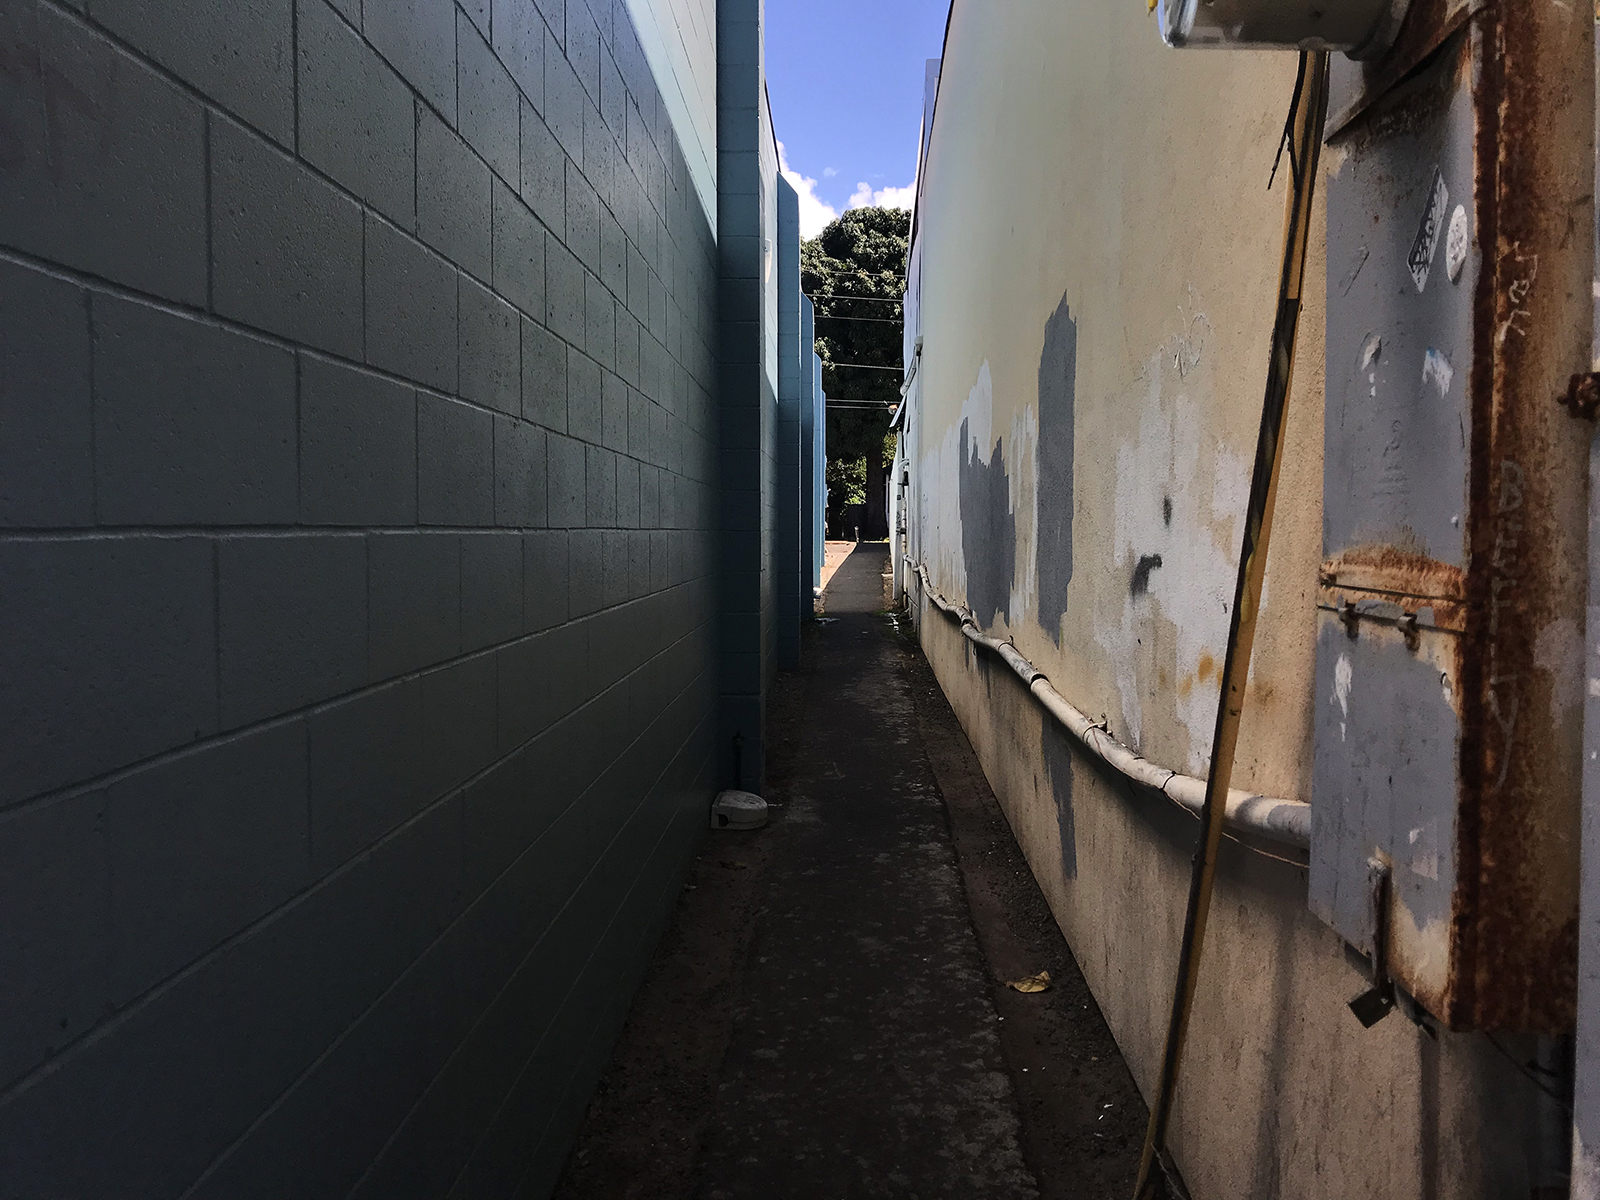 Alleyway in Lahaina, Maui 2019